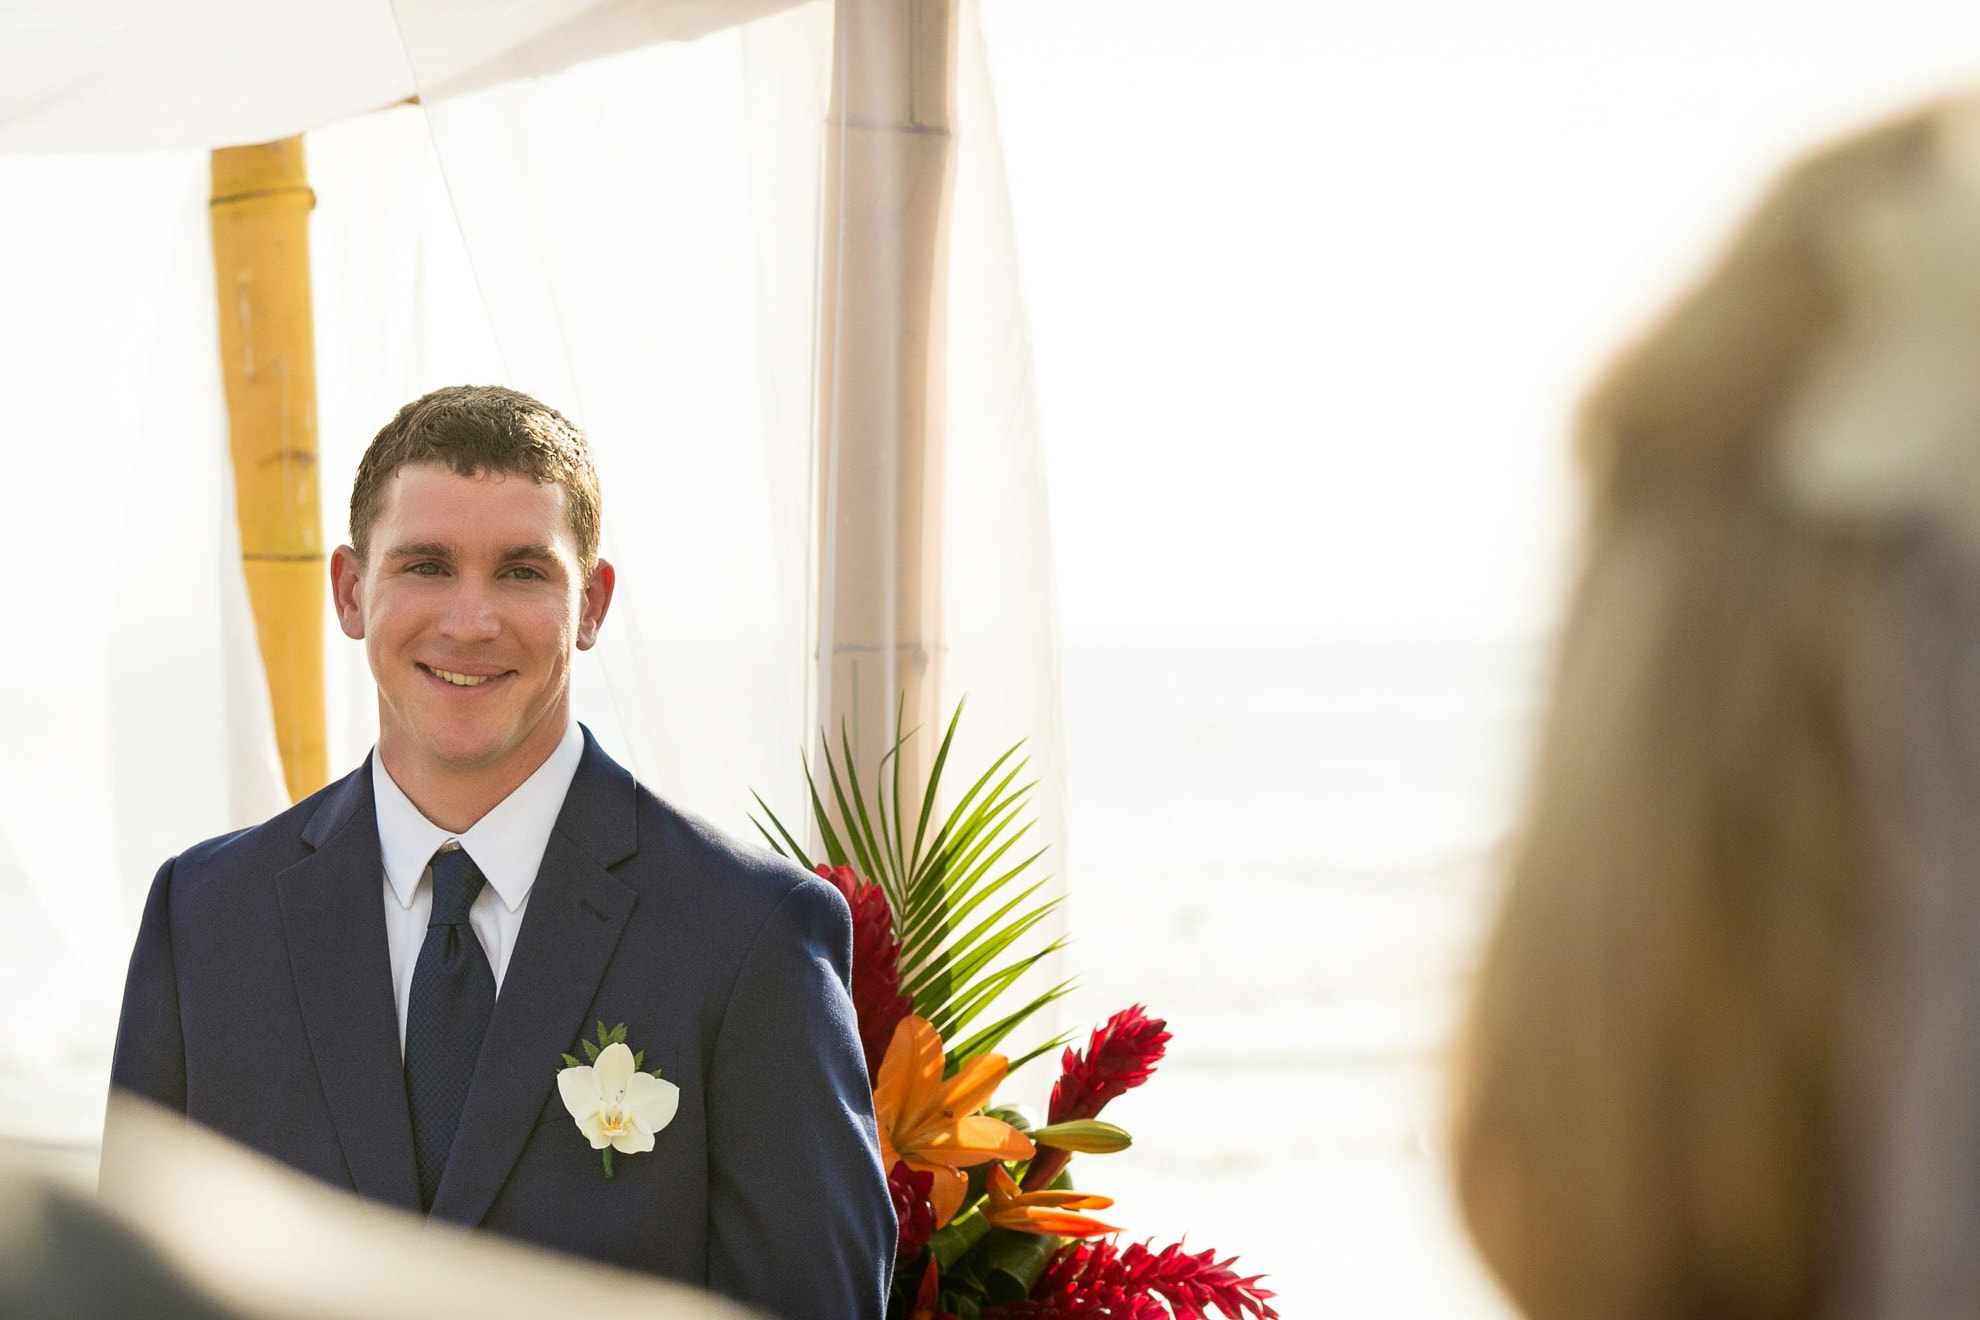 Groom sees bride in dress for the first time.